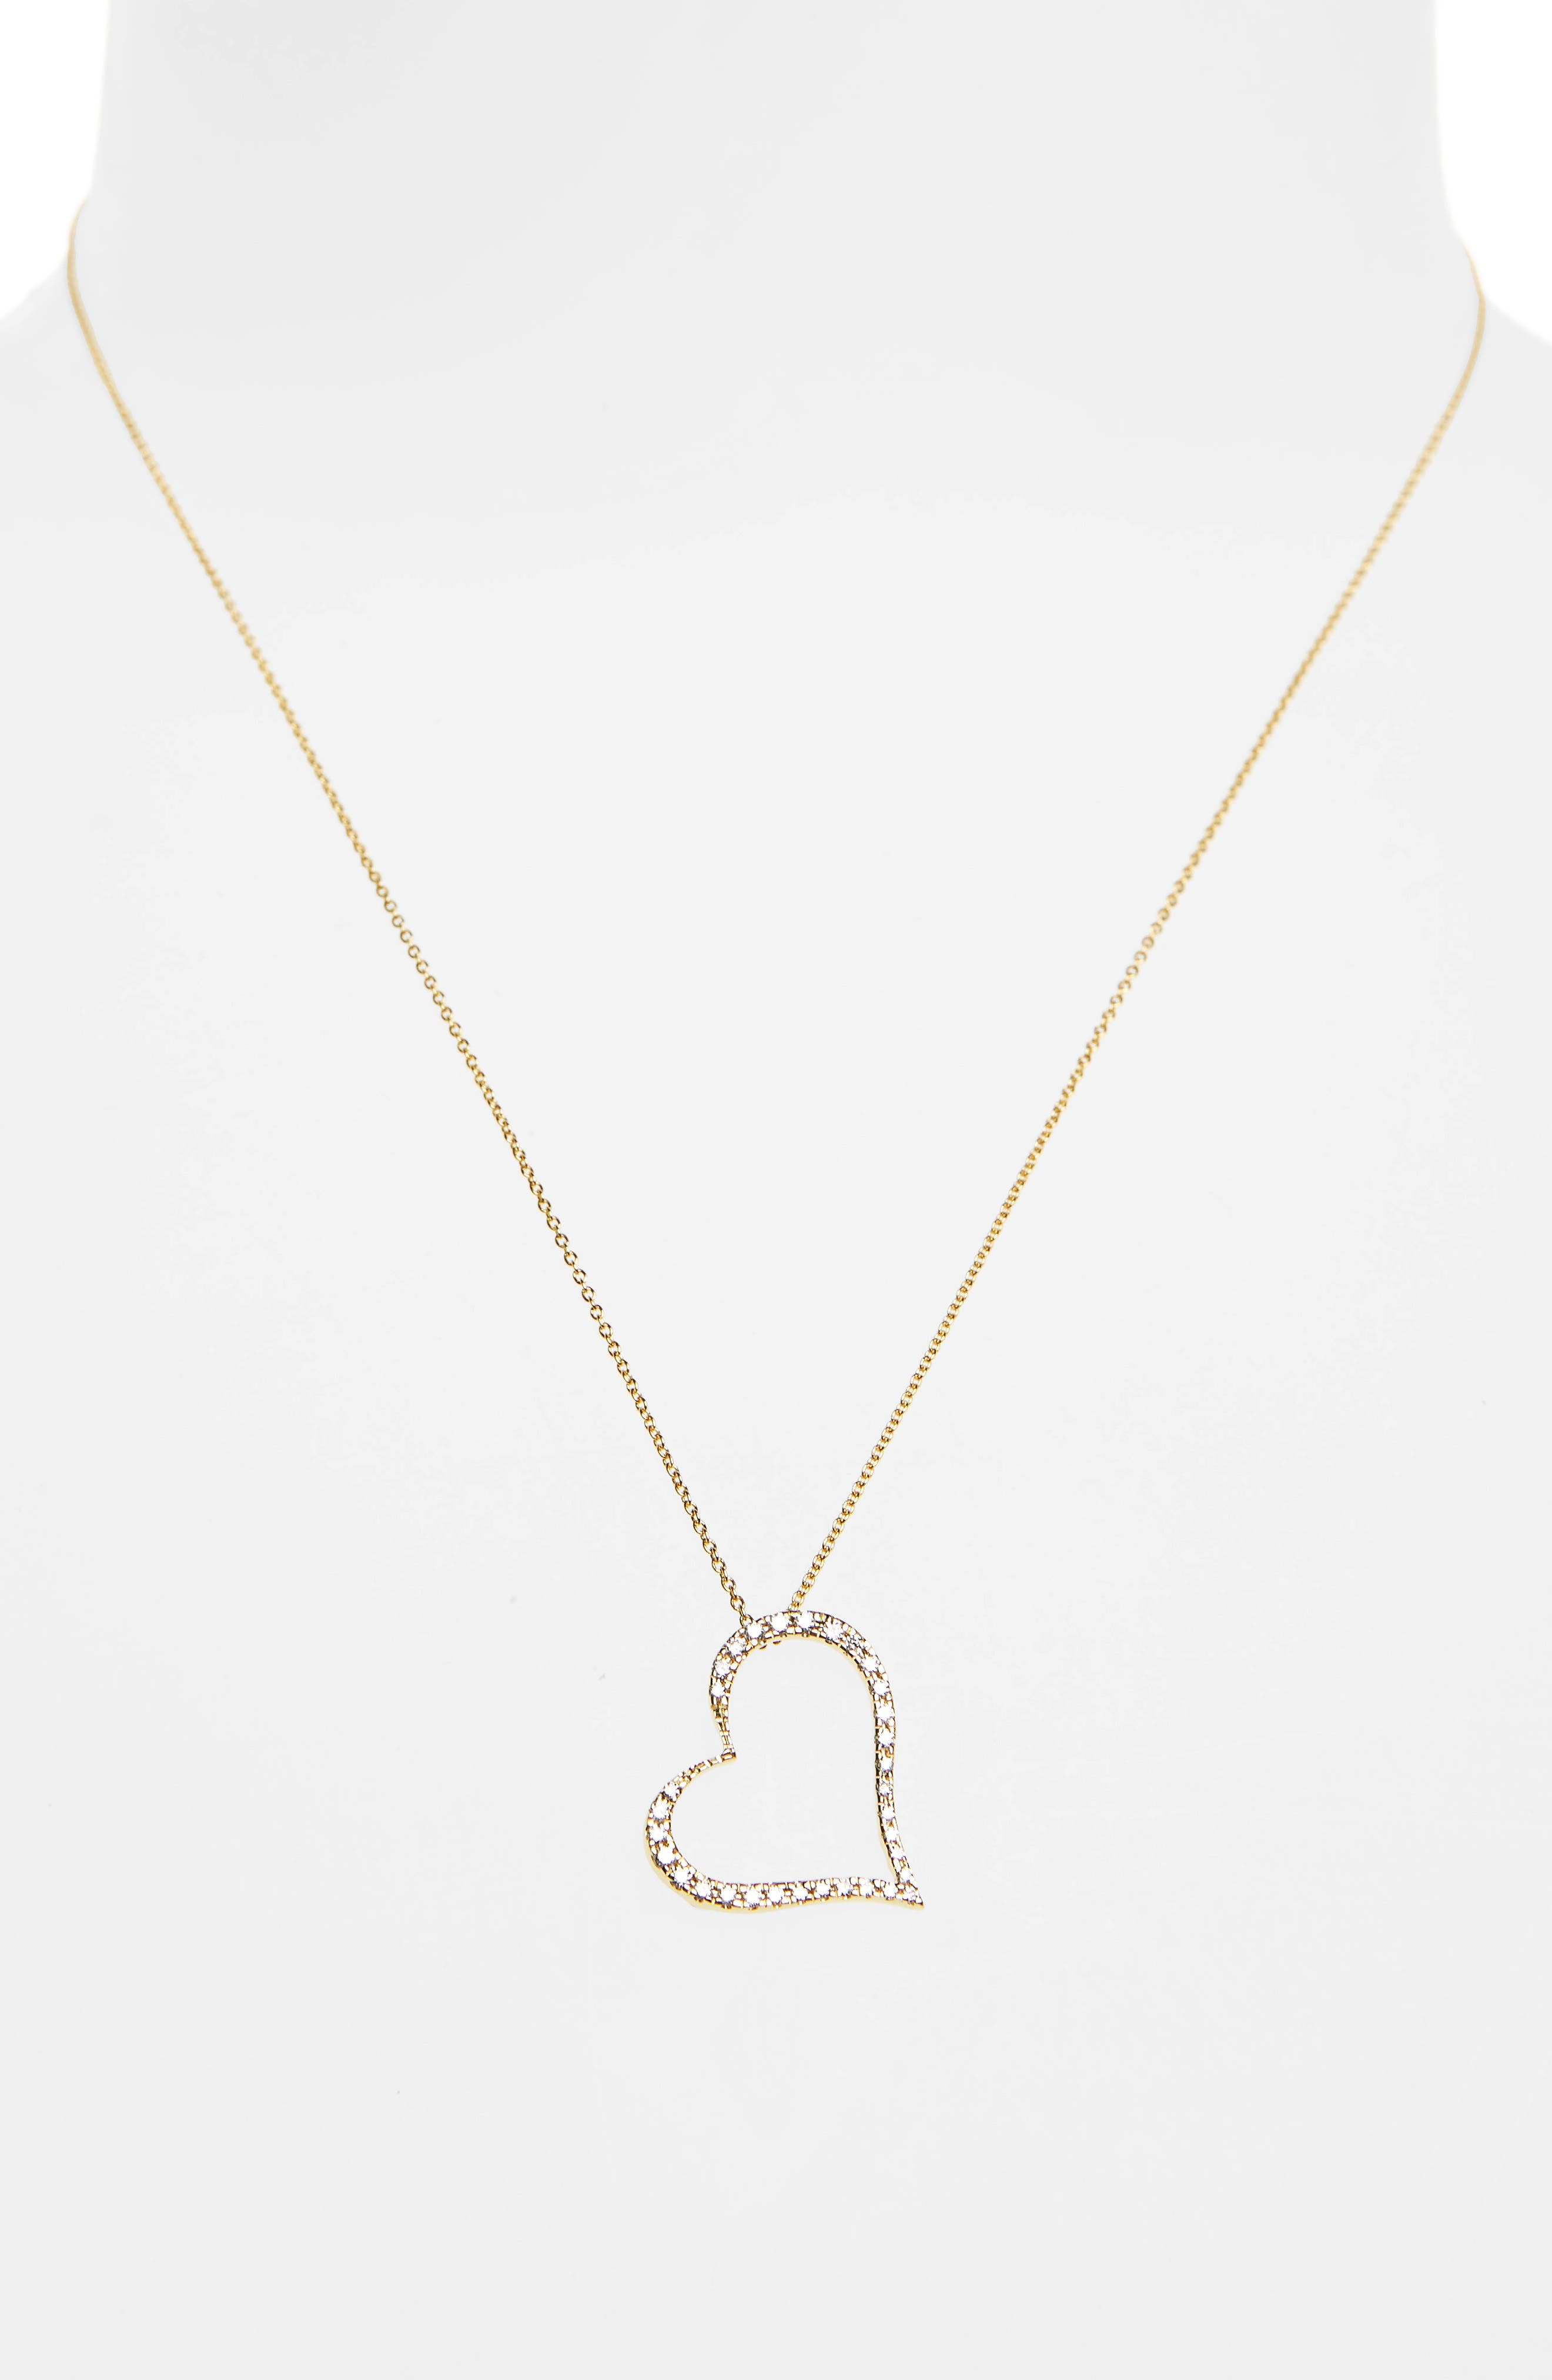 ROBERTO COIN,                             Slanted Diamond Heart Pendant Necklace,                             Alternate thumbnail 2, color,                             710